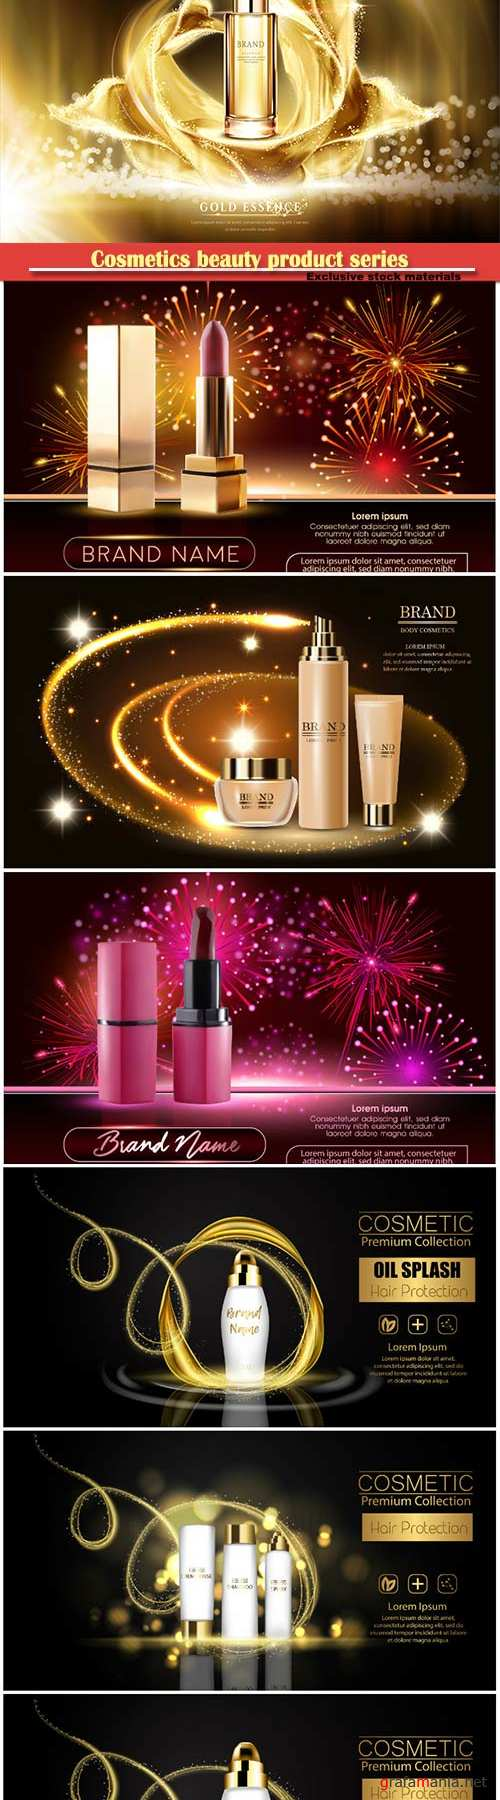 Cosmetics beauty product series, presentation banners mockup, vector illustration